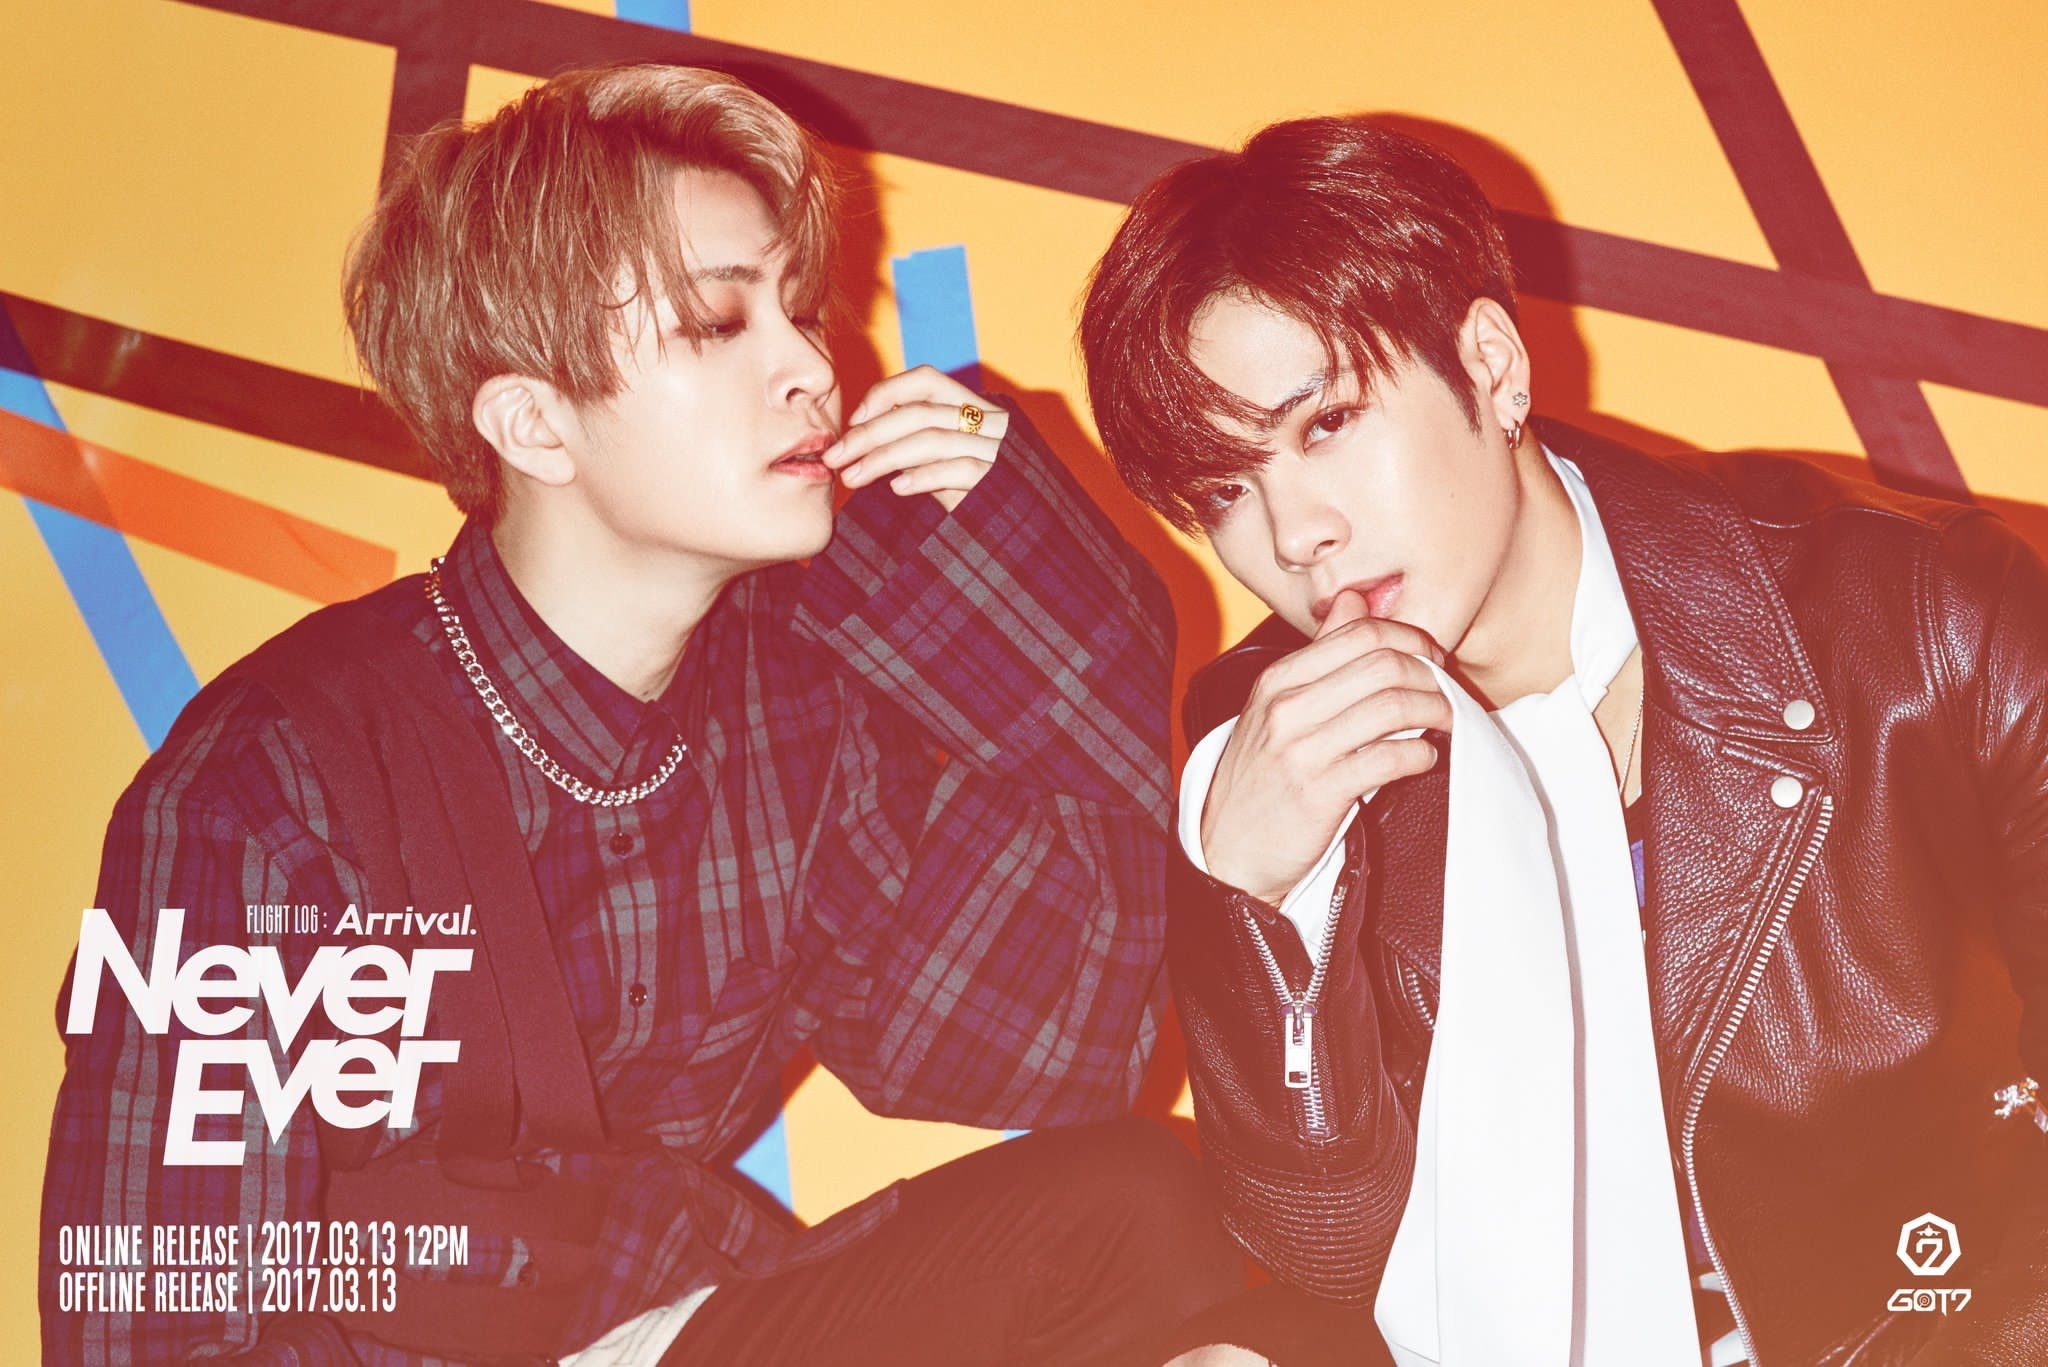 flight log arrival never ever #jacksonwang #youngjae #got7